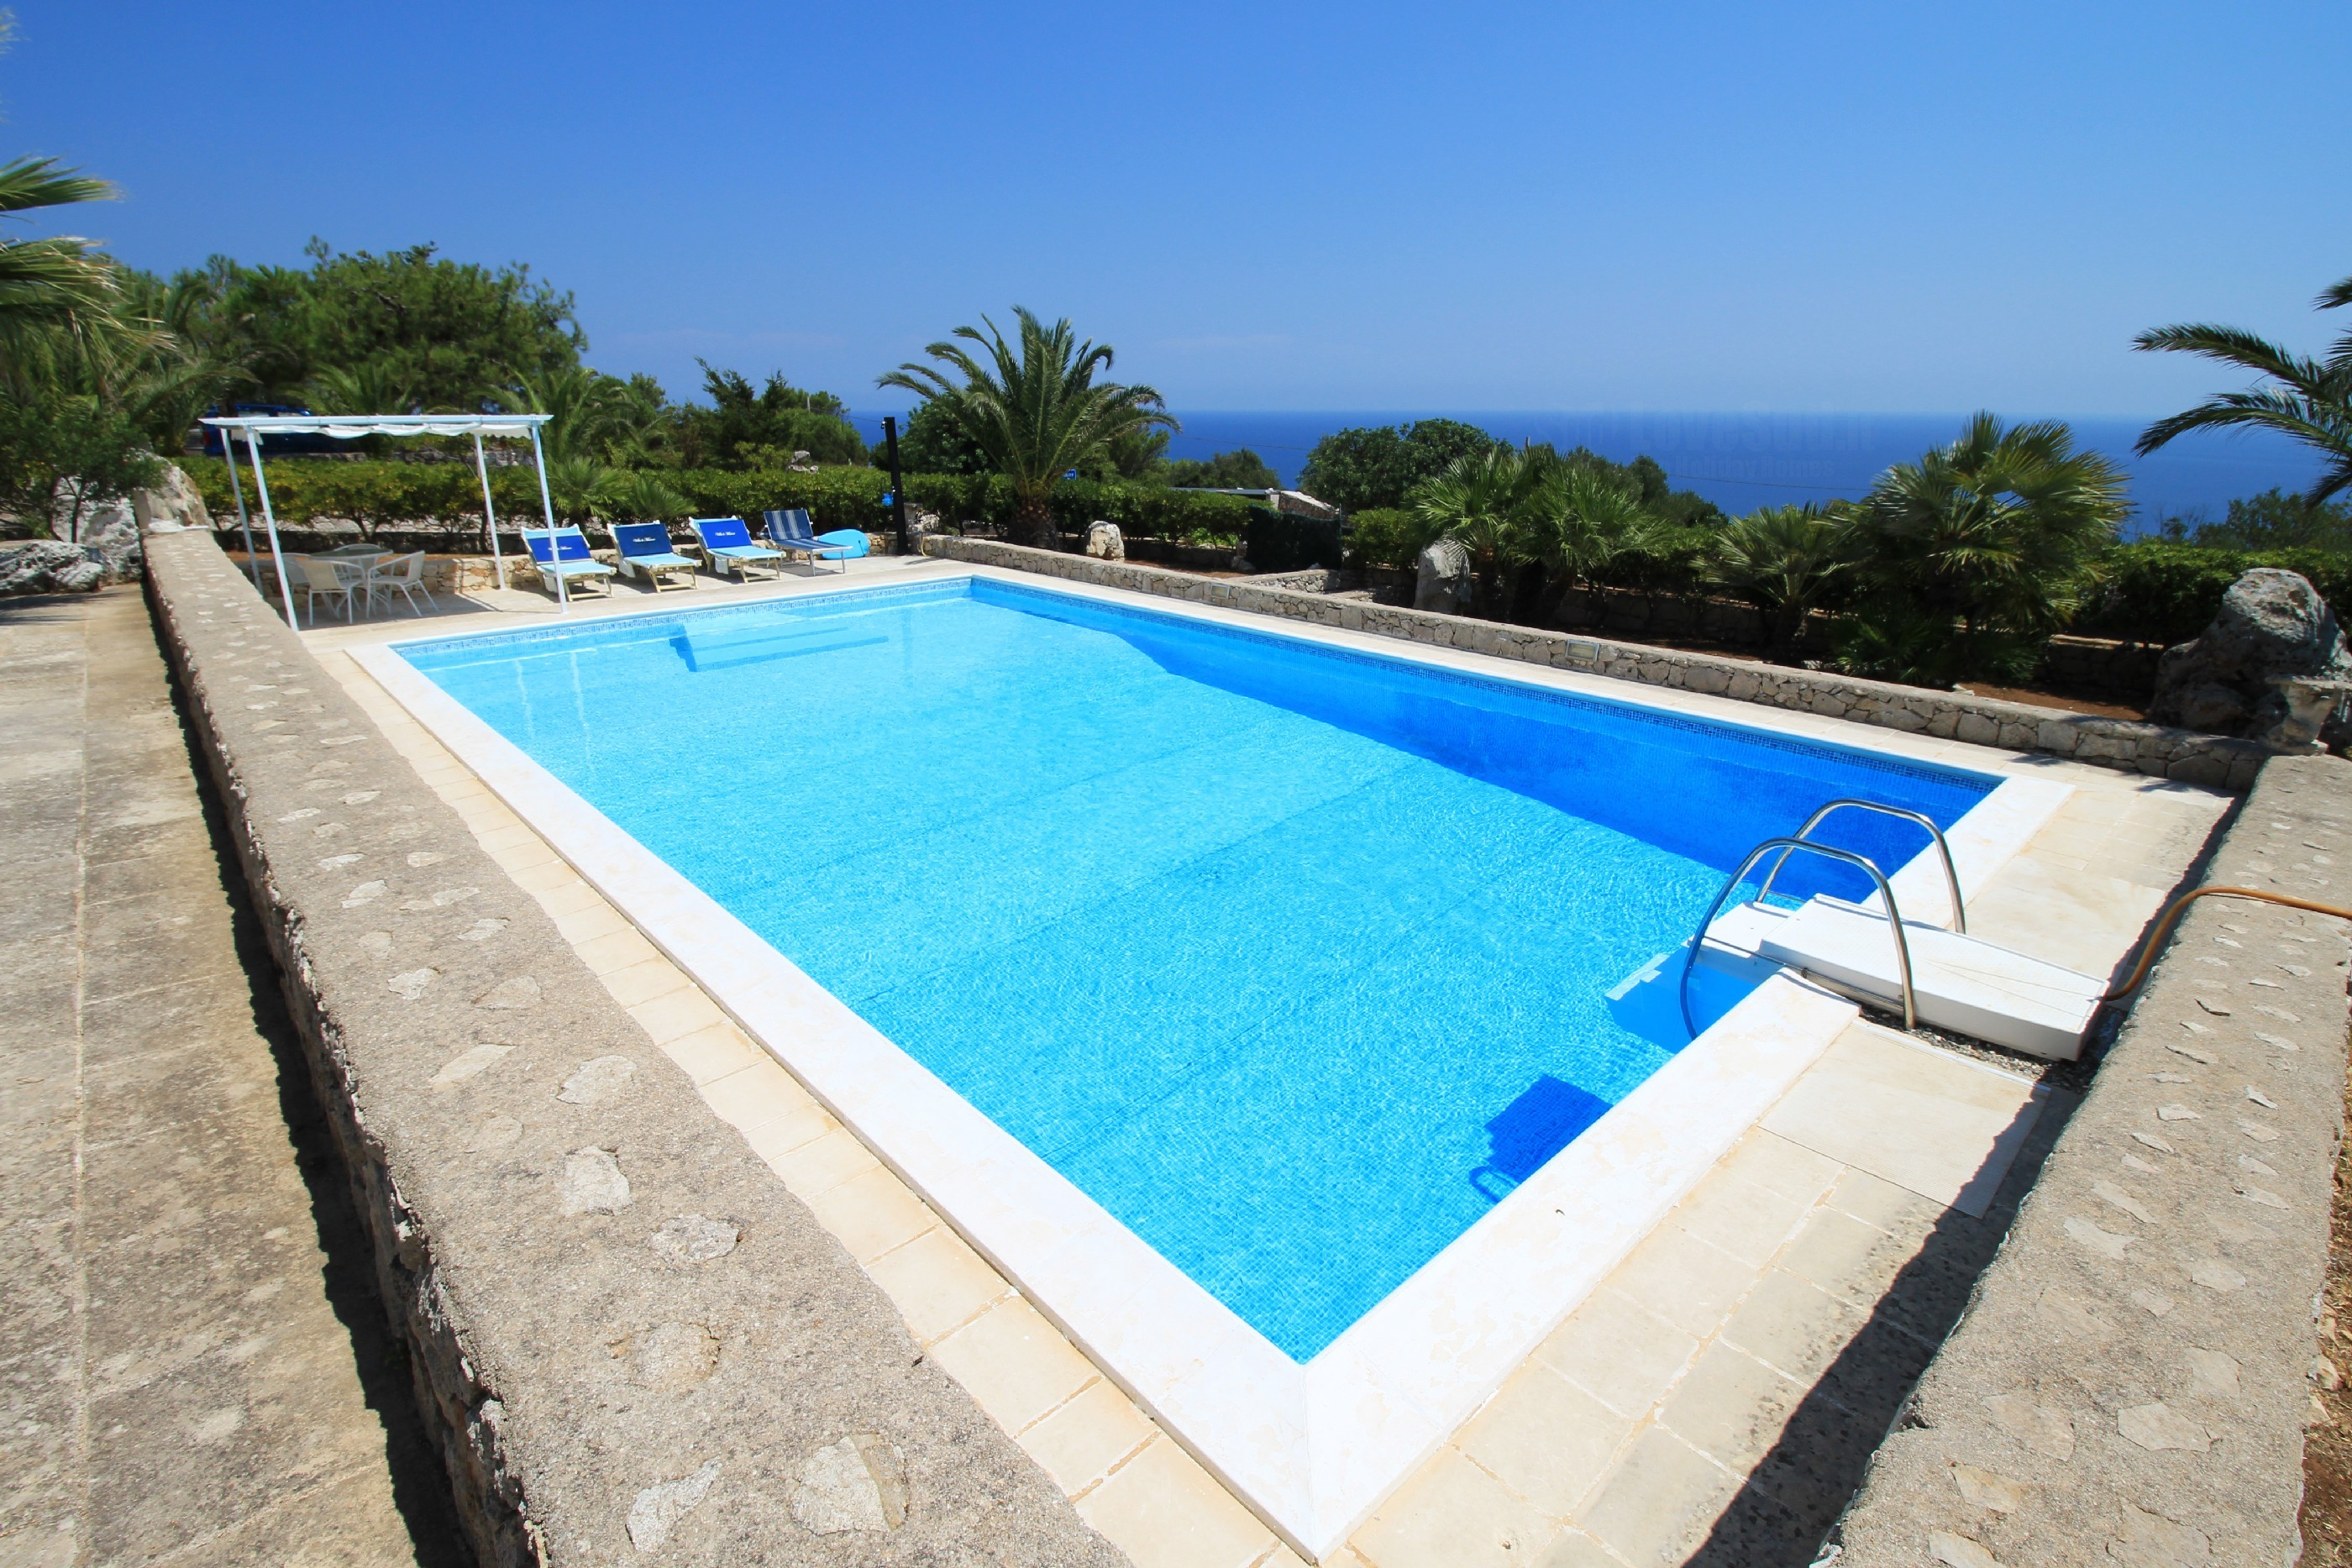 Apartment Stella Marina luxe pool home photo 20269067